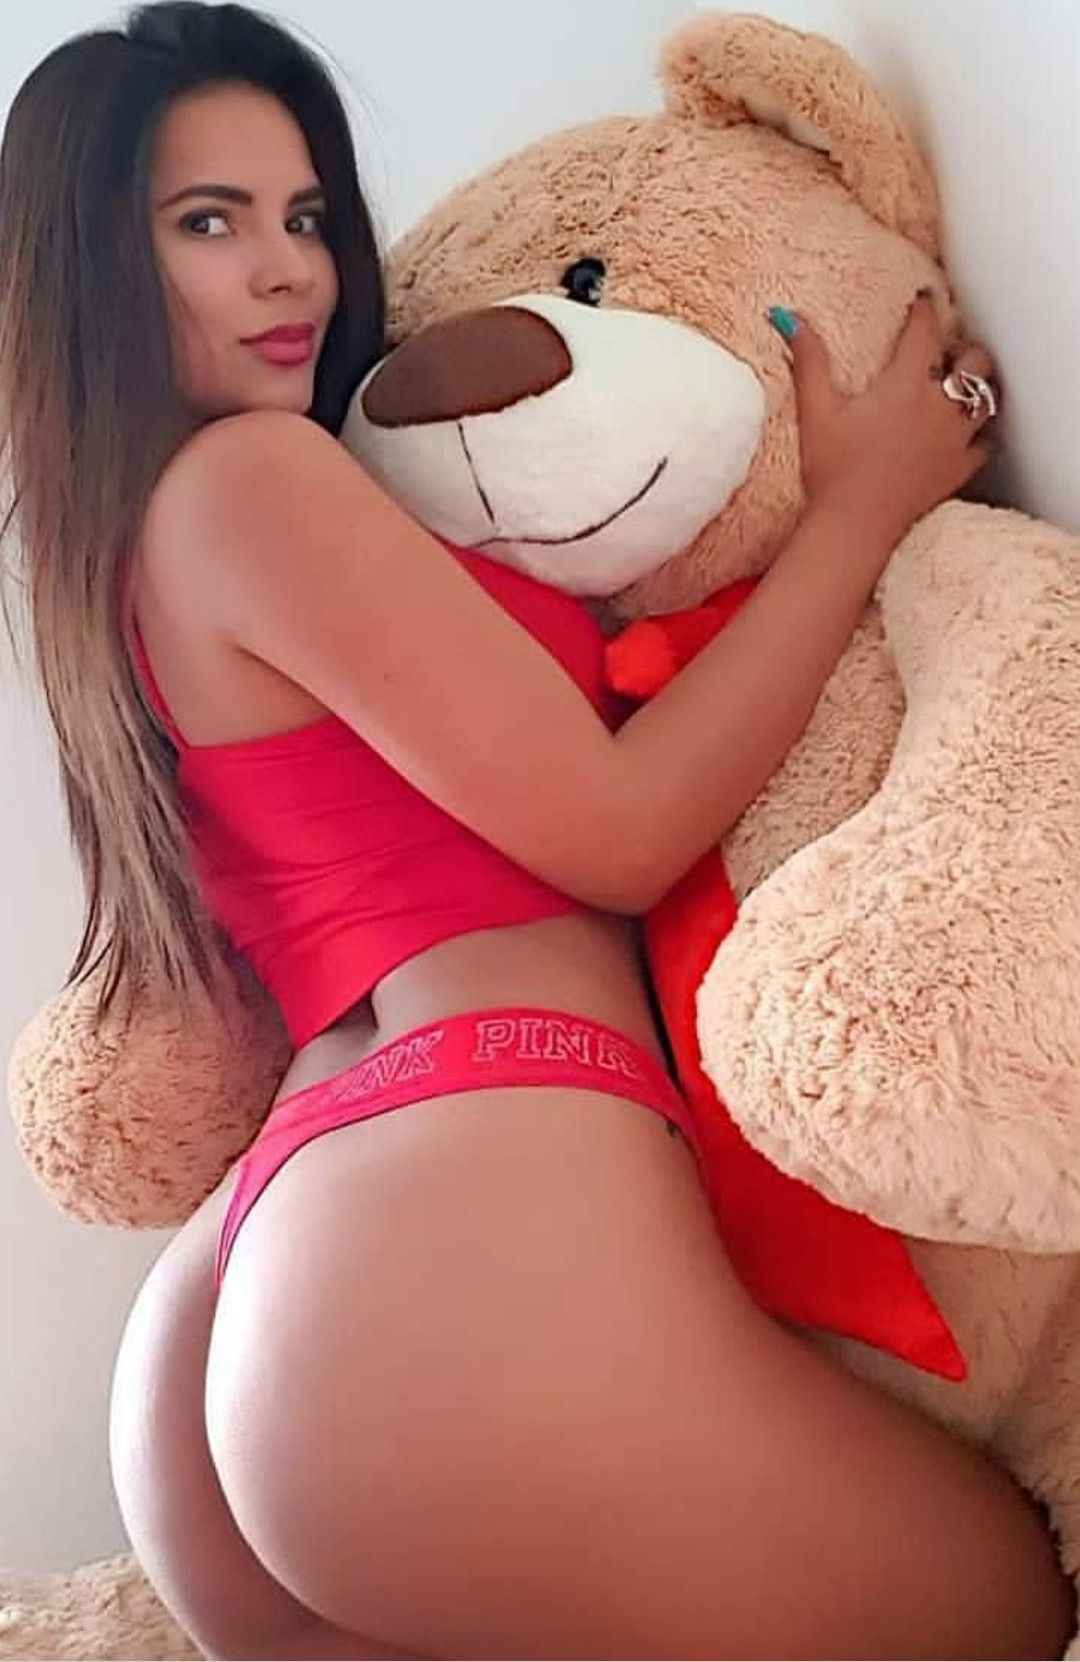 New And Used Big Teddy Bear For Sale In Bronx, Ny